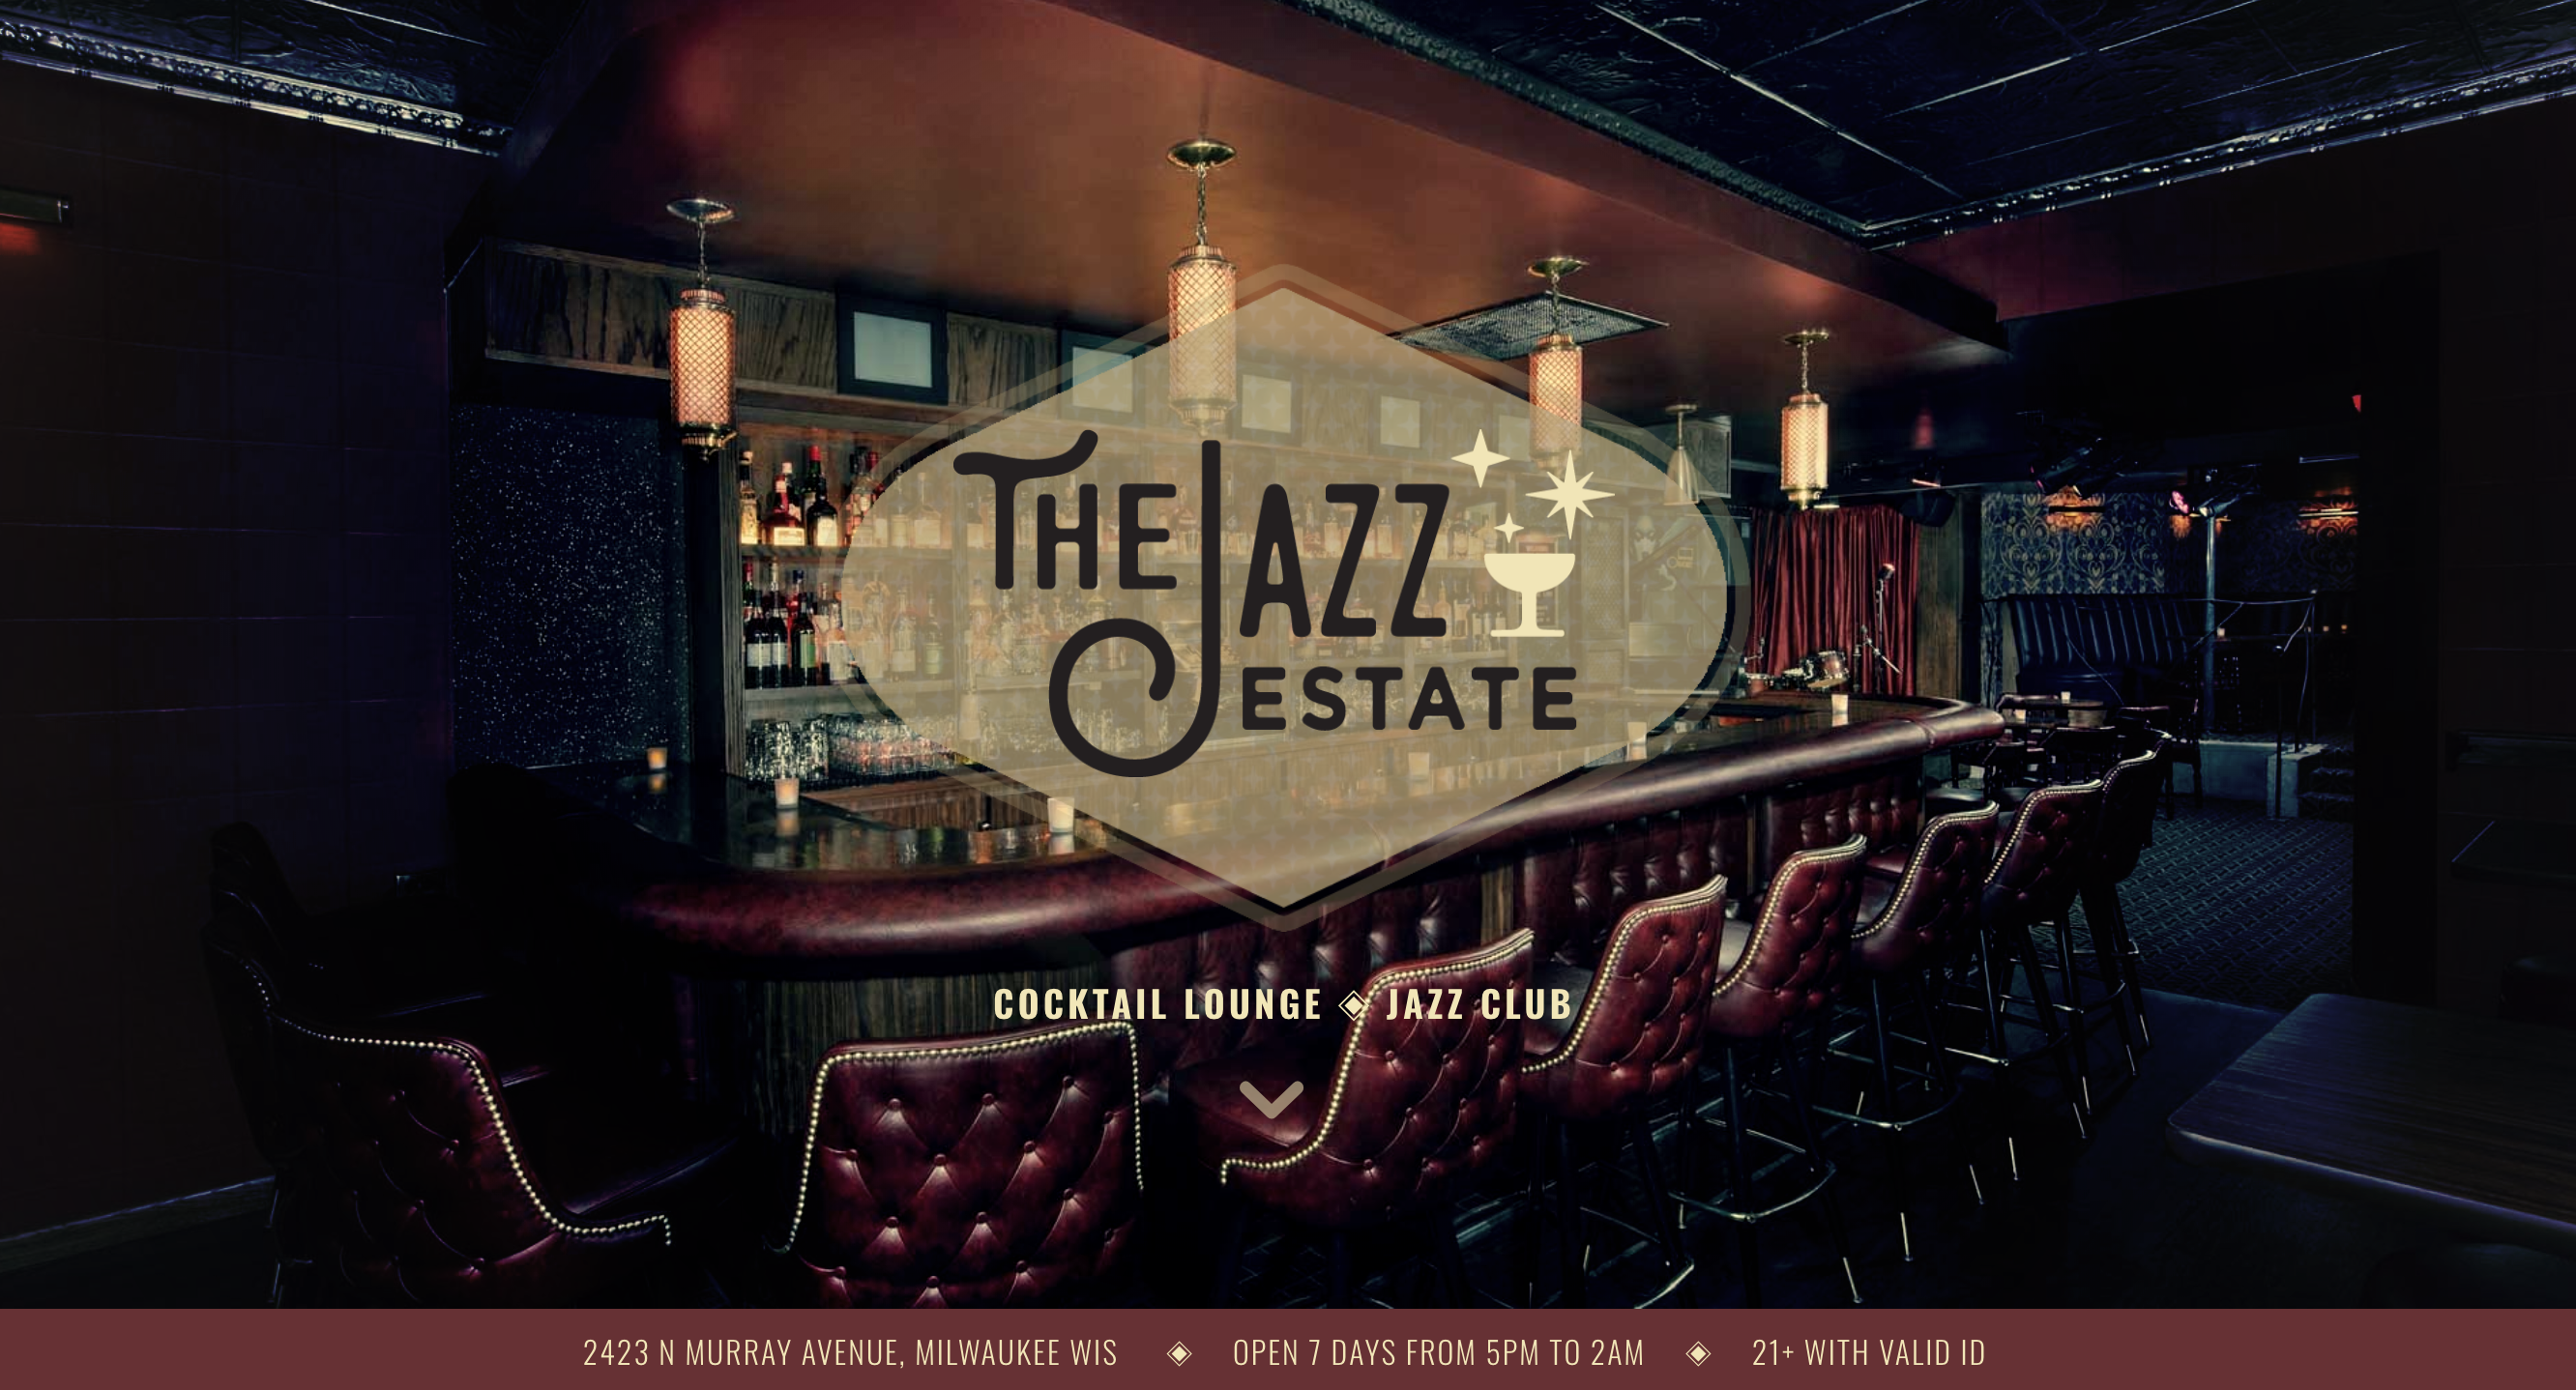 THE JAZZ ESTATE - Milwaukee's Jazz and Cocktail Lounge since 1977